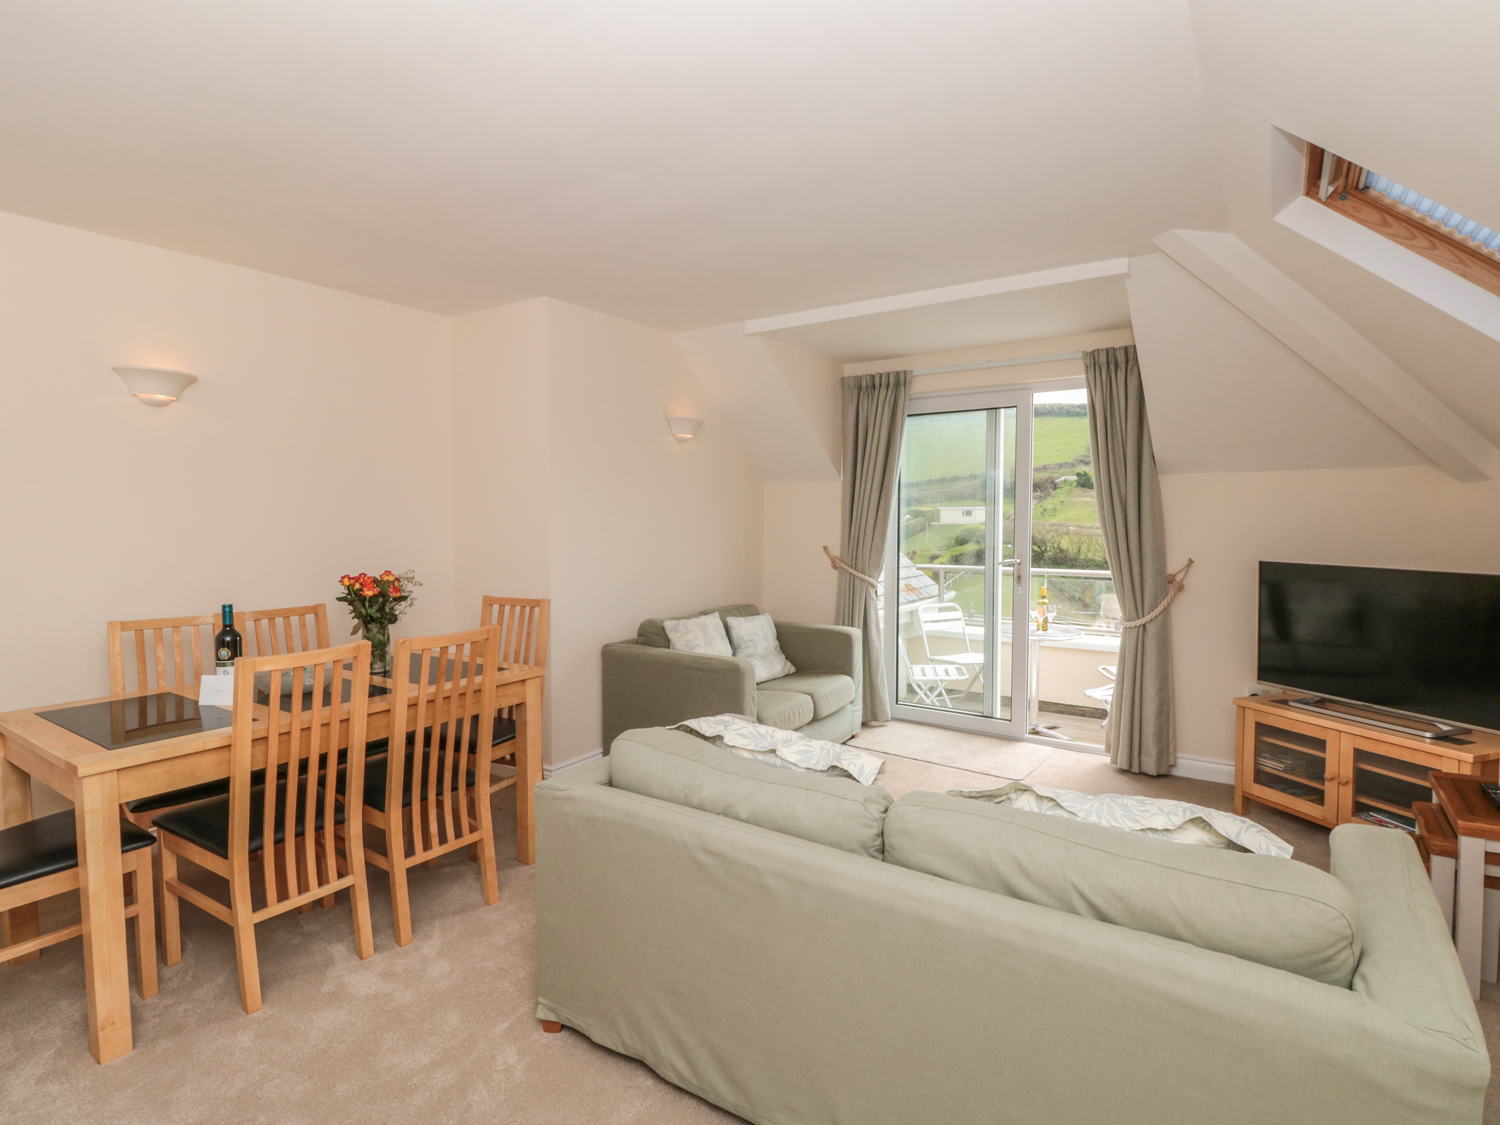 6 Chichester Court Image 9